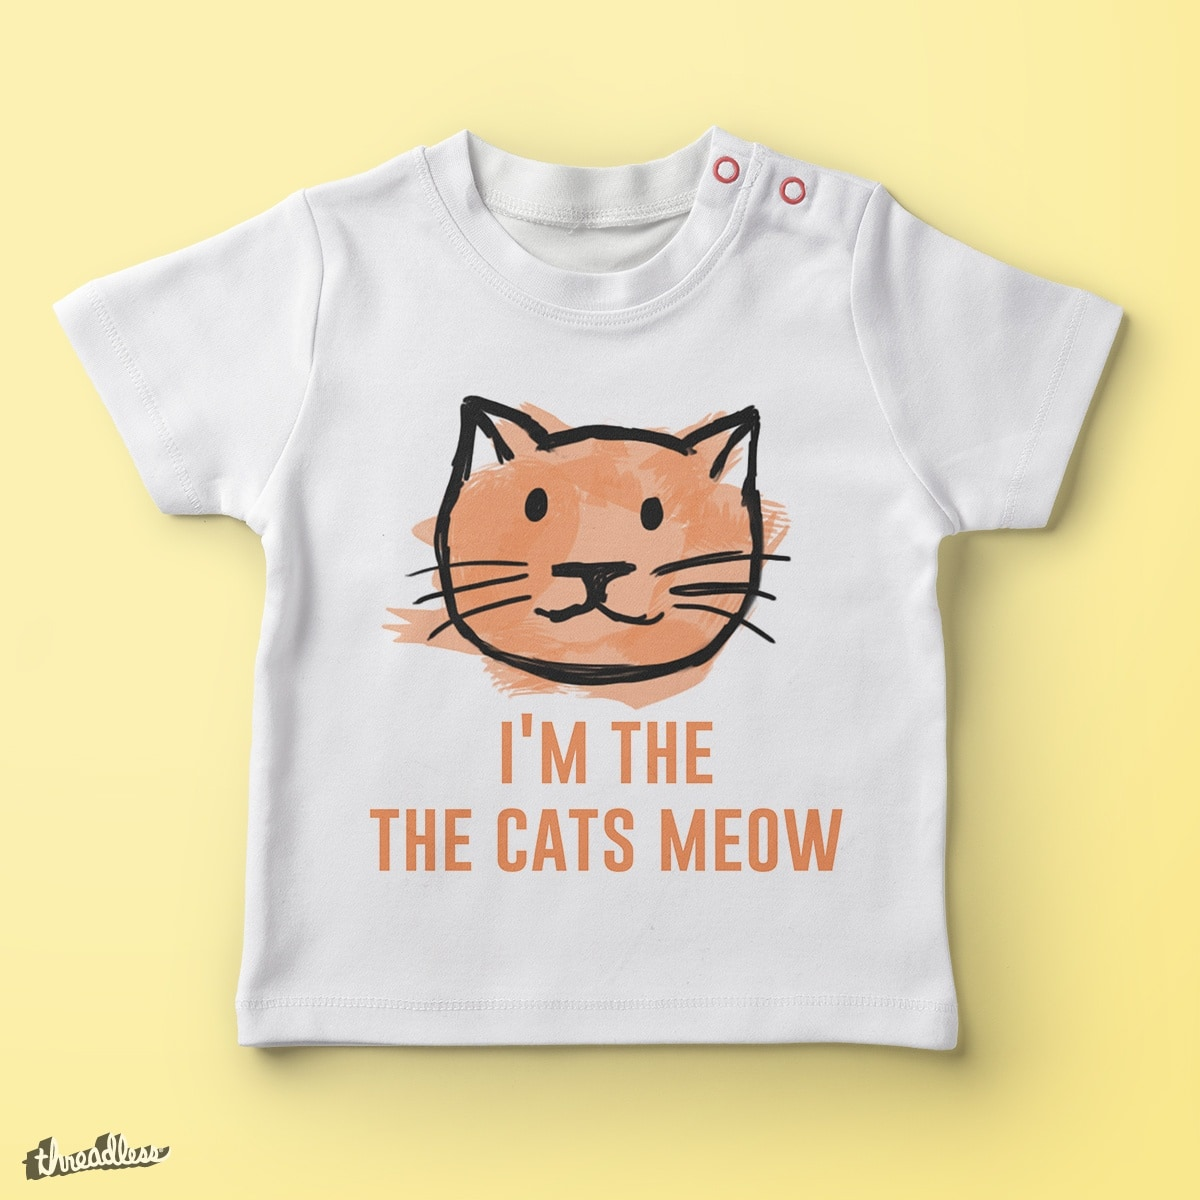 Score The Cats Meows By Ambientvibes On Threadless